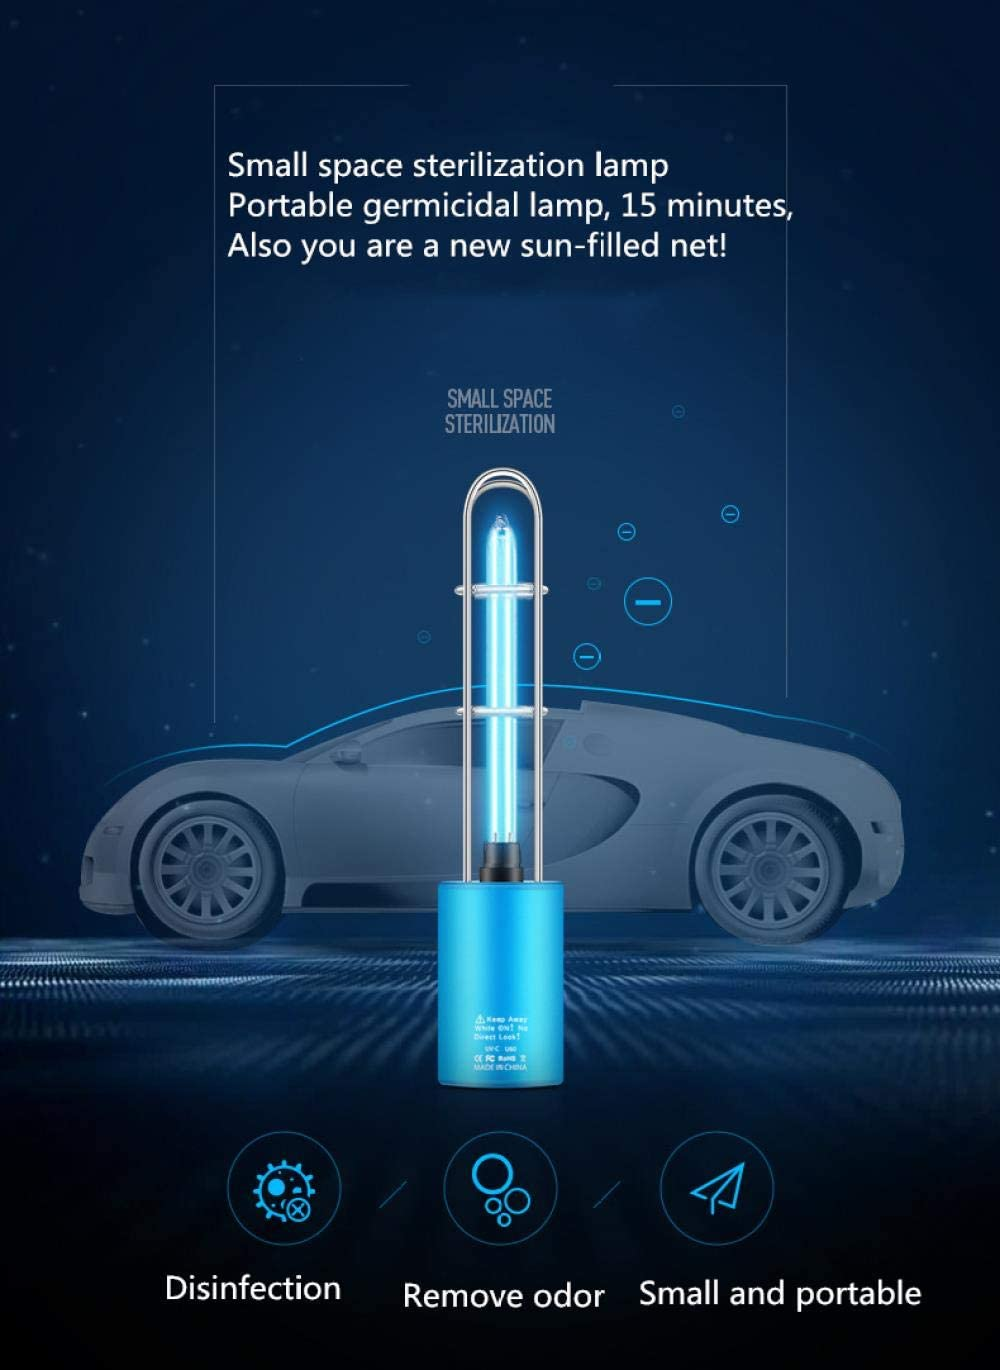 Air Purification Deodorization Built-in Battery Sterilization Blue Household Car Germicidal Lamp Uvc Germicidal Lamp Rechargeable Portable Disinfection Lamp